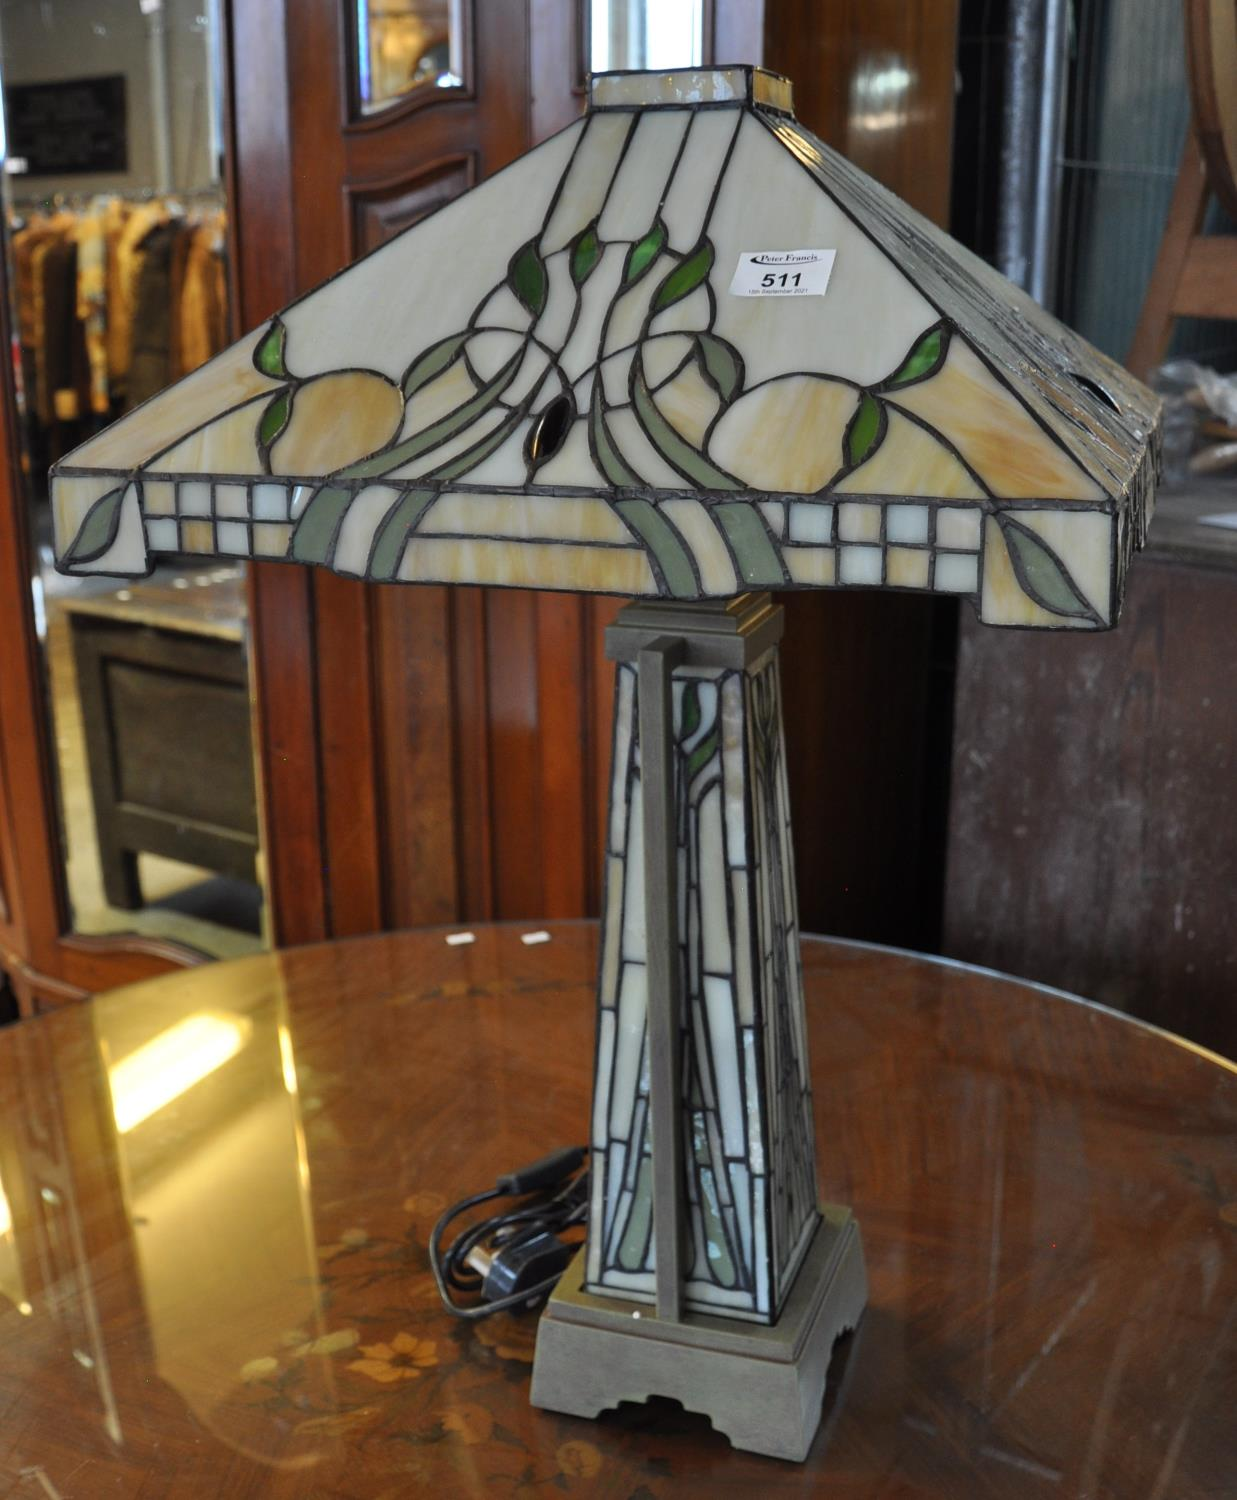 Art Nouveau style Tiffany design table lamp having fruits, berries and foliage on a tapering